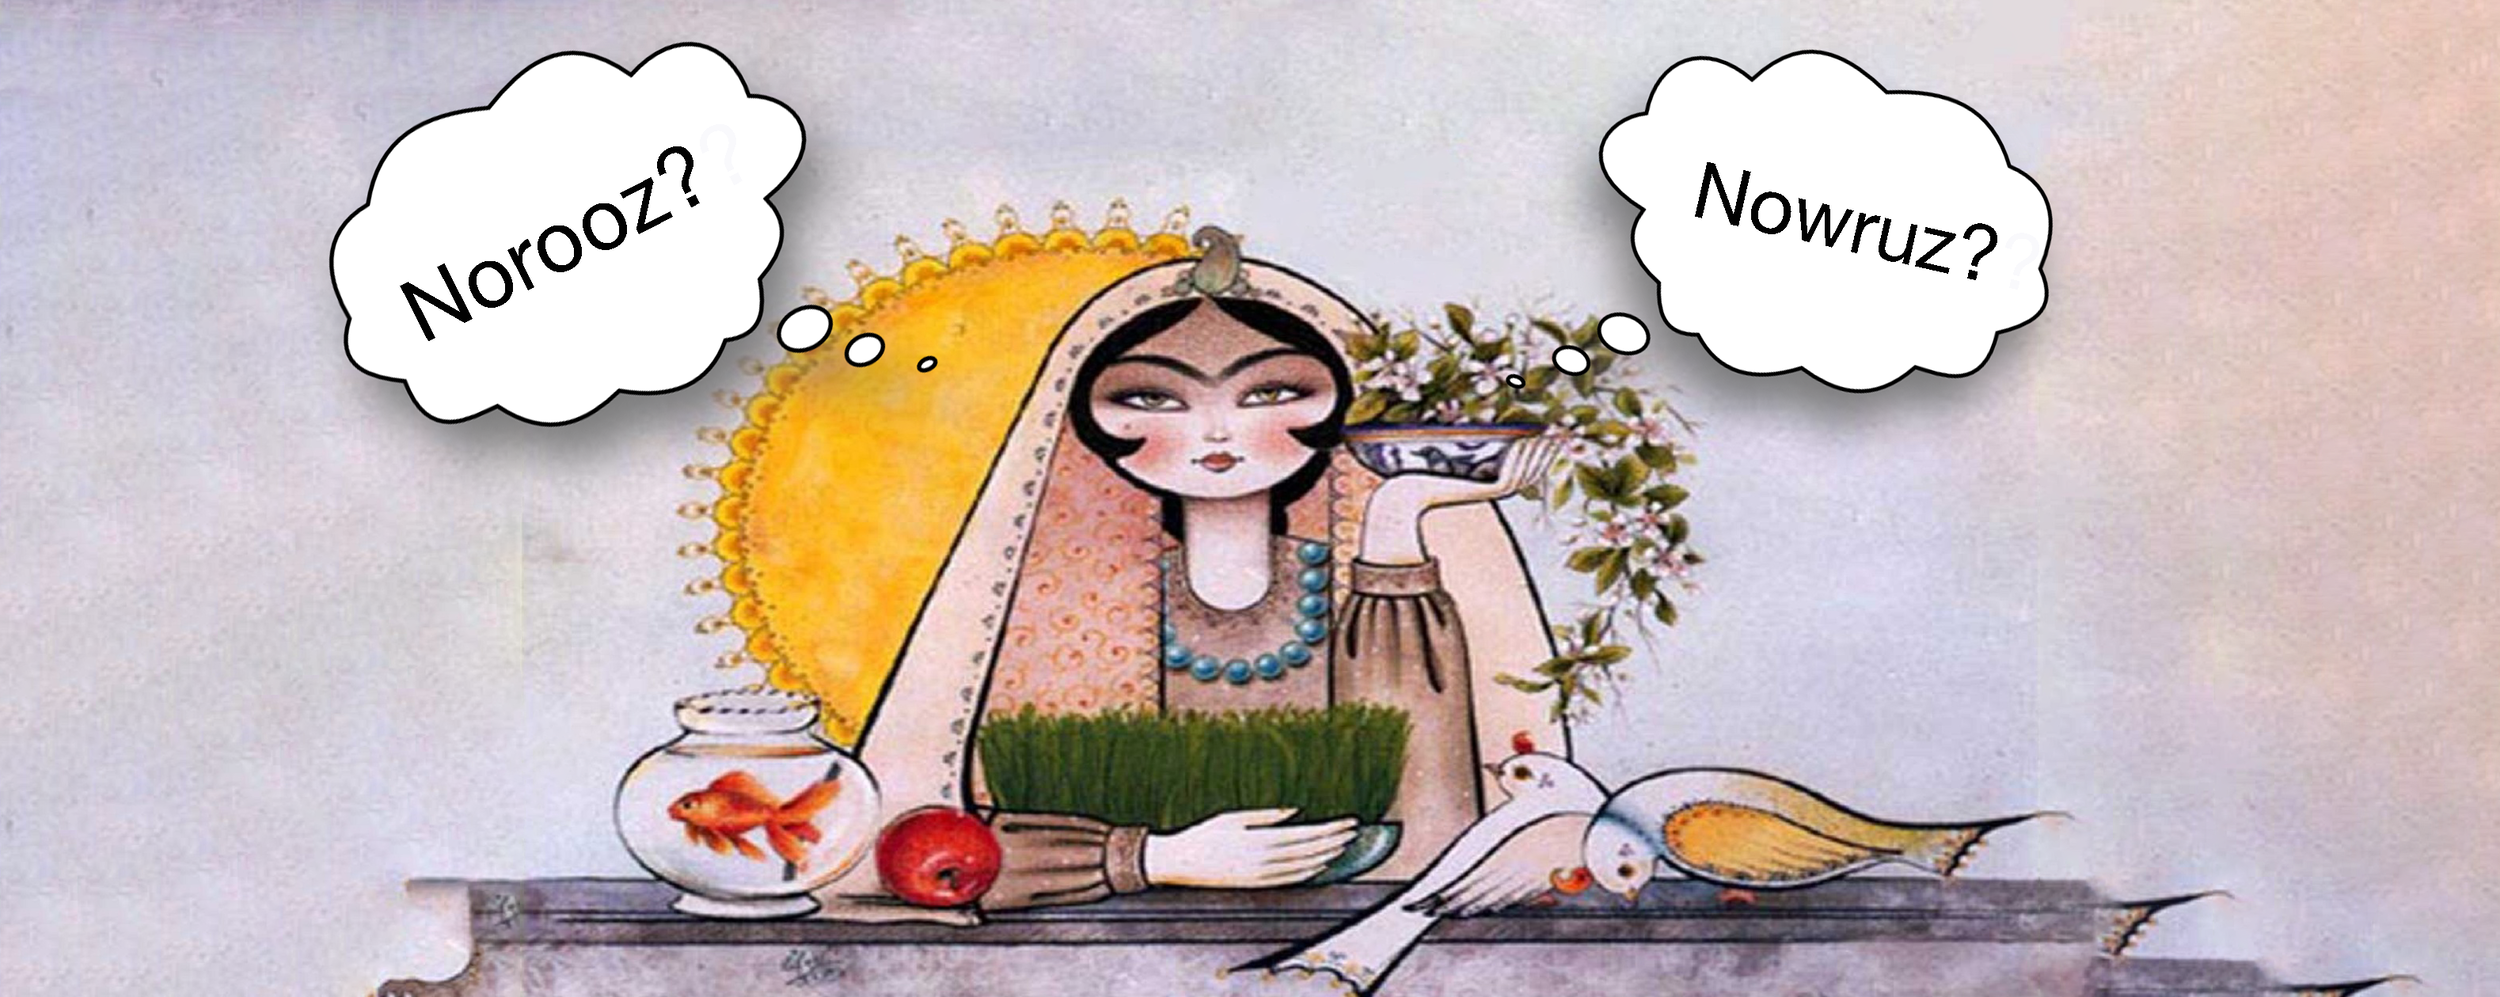 NICA - Nowruz or Norooz.png